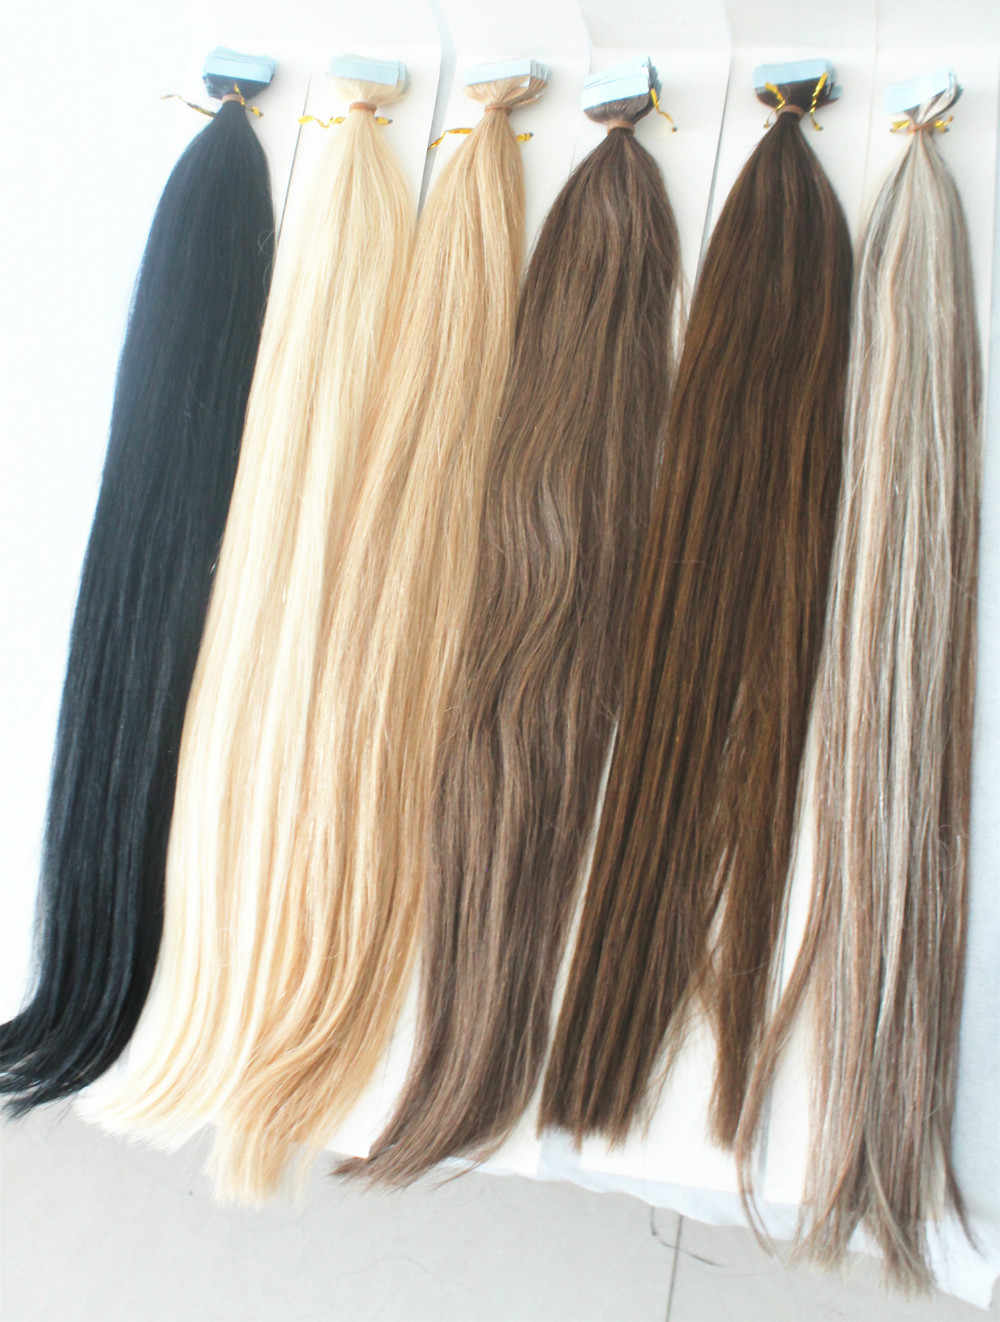 Cheap tape hair extensionsnatural human hair on tape 40pcs 100g cheap tape hair extensionsnatural human hair on tape 40pcs 100g silky straight brazilian virgin hair remy skin weft tape hair in skin weft hair extensions pmusecretfo Choice Image